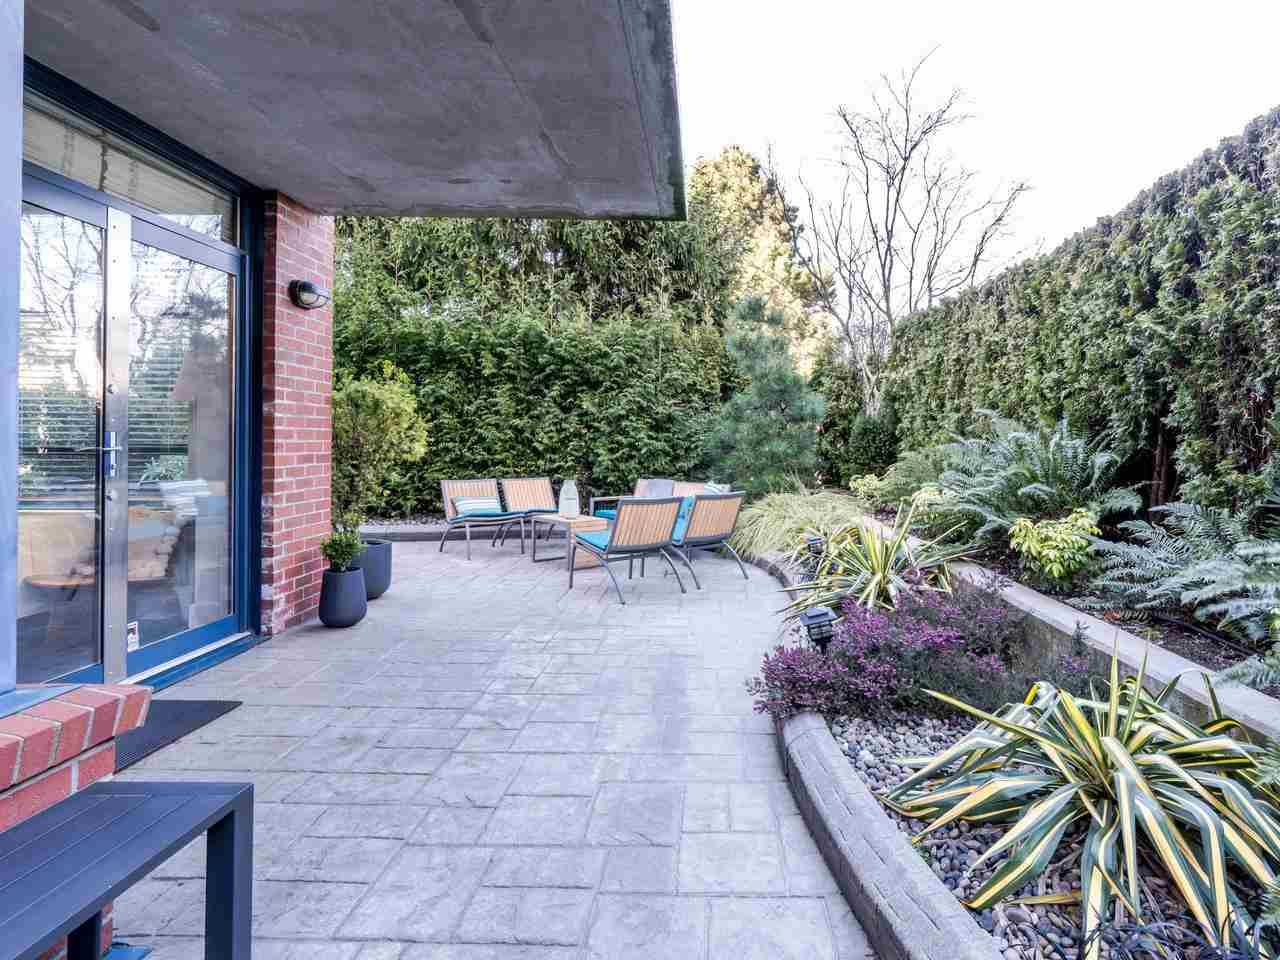 """Main Photo: 101 1725 BALSAM Street in Vancouver: Kitsilano Condo for sale in """"Balsam House"""" (Vancouver West)  : MLS®# R2454346"""